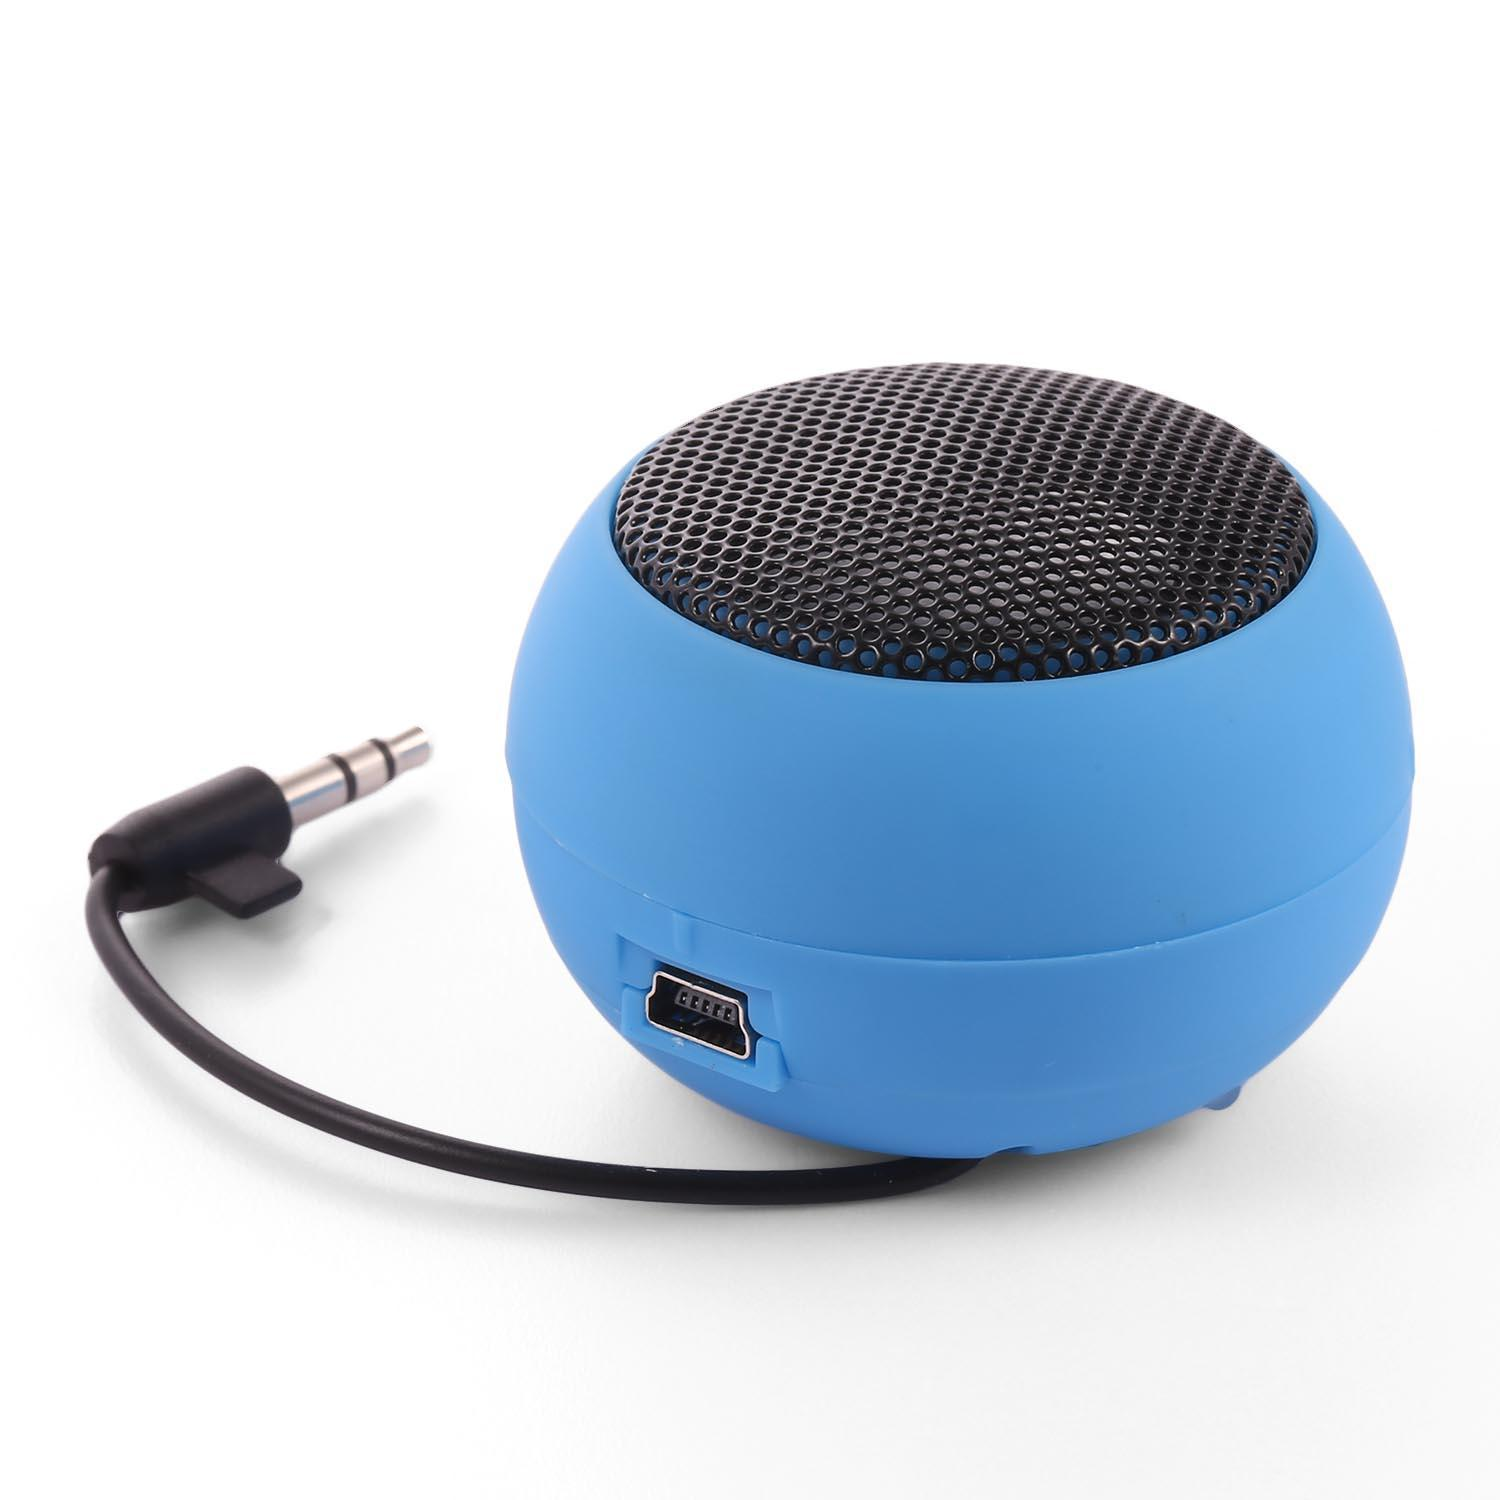 New Smartphone Tablet Laptop Super Portable Mini Speaker HFON